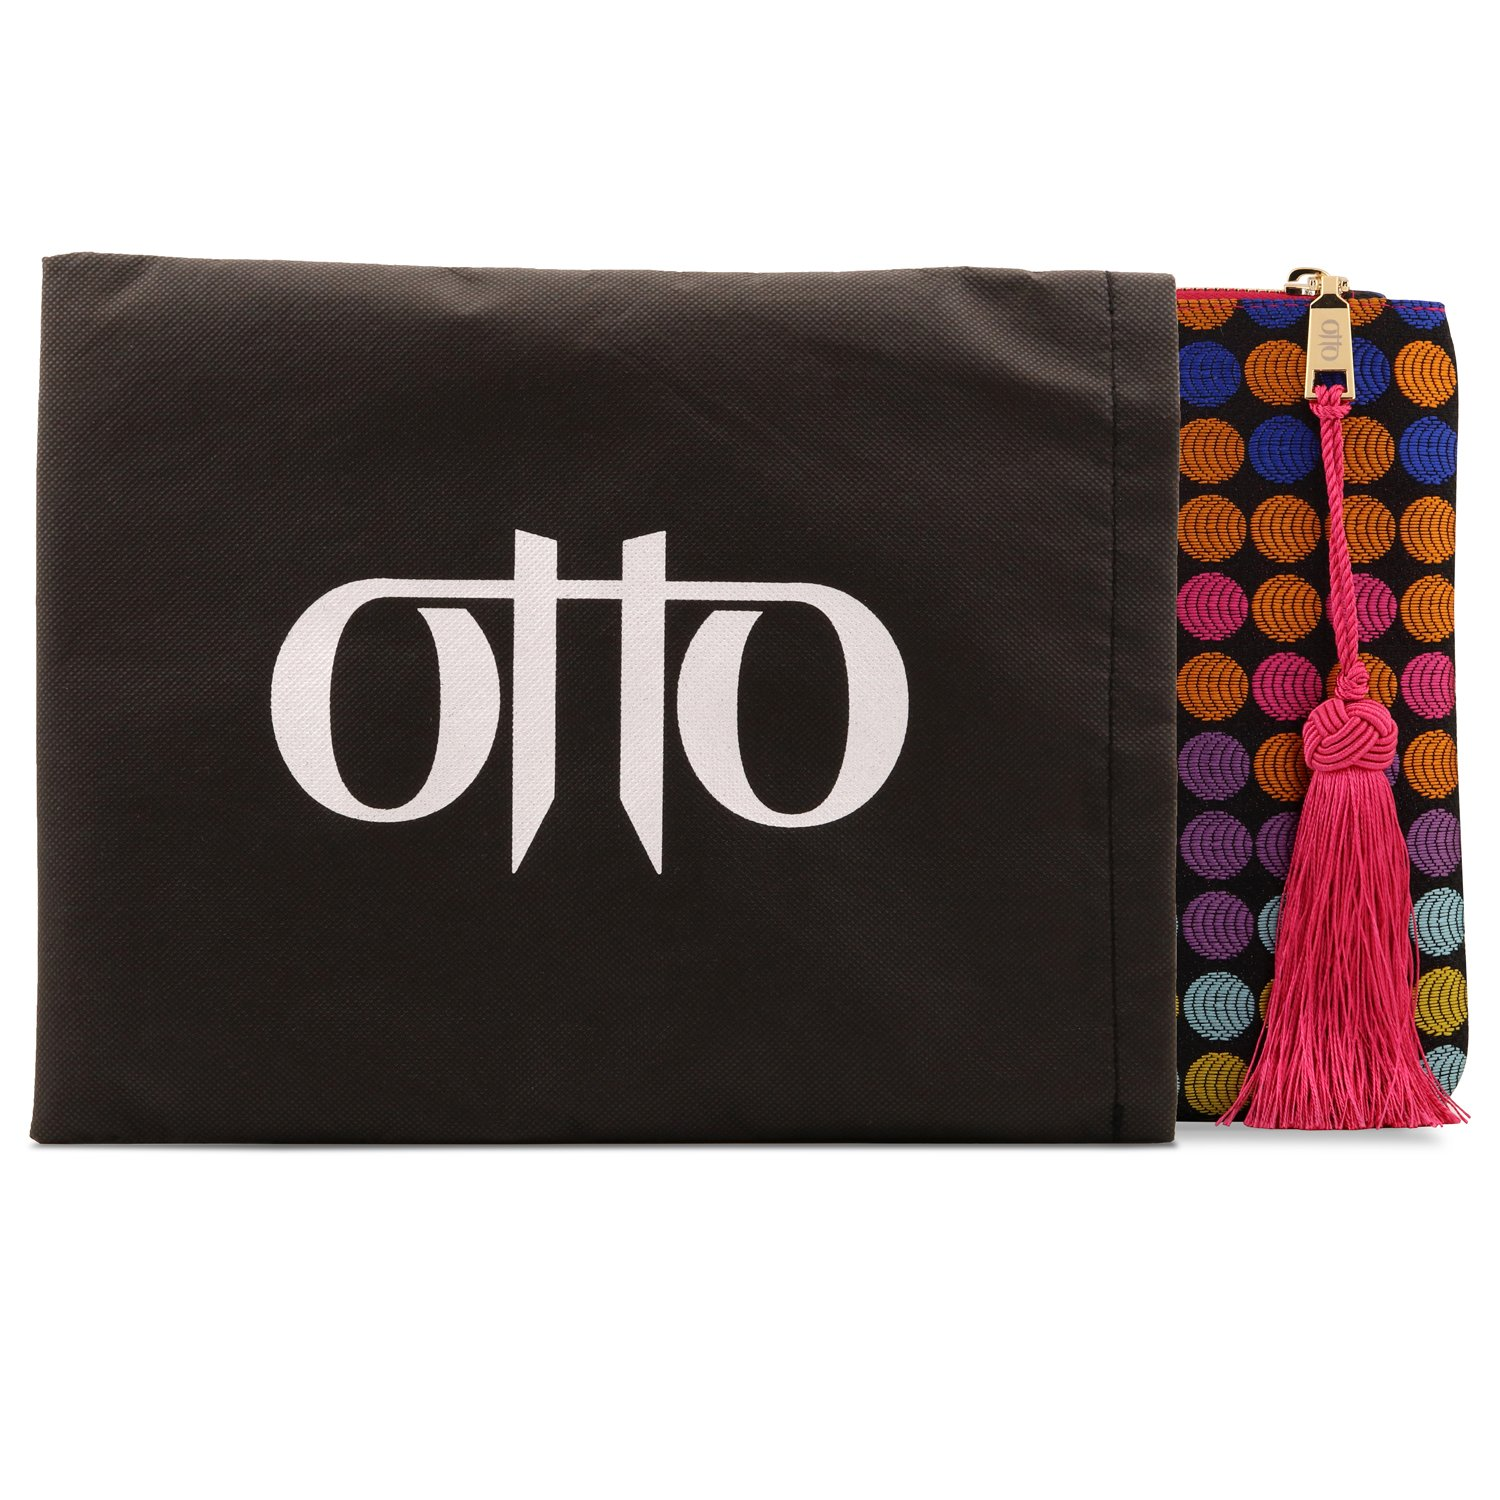 Otto Designer Women's Bohemian Clutch Purse - Multiple Slots Money, Cards, Smartphone - Ultra Slim (Dots) by OTTO Leather (Image #3)